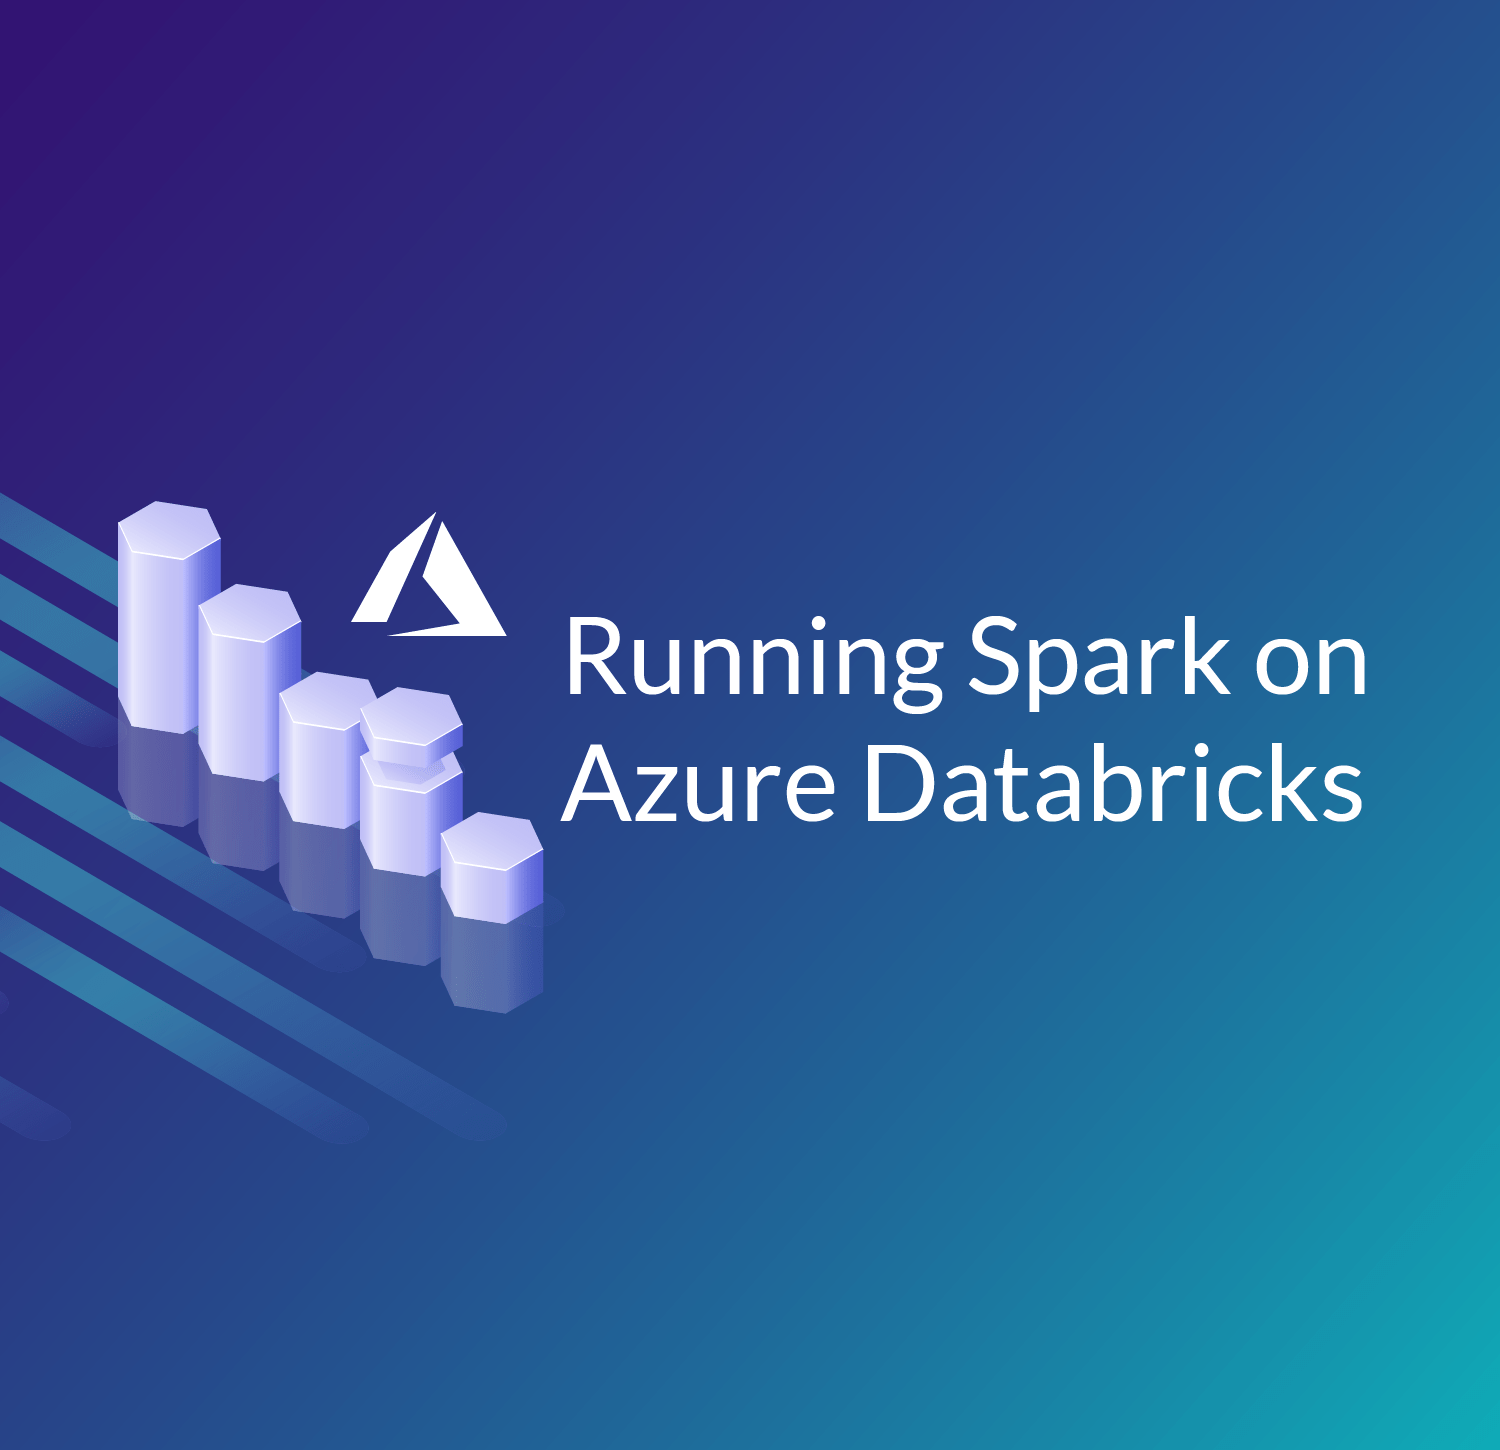 Running Apache Spark on Azure Databricks - Cloud Academy